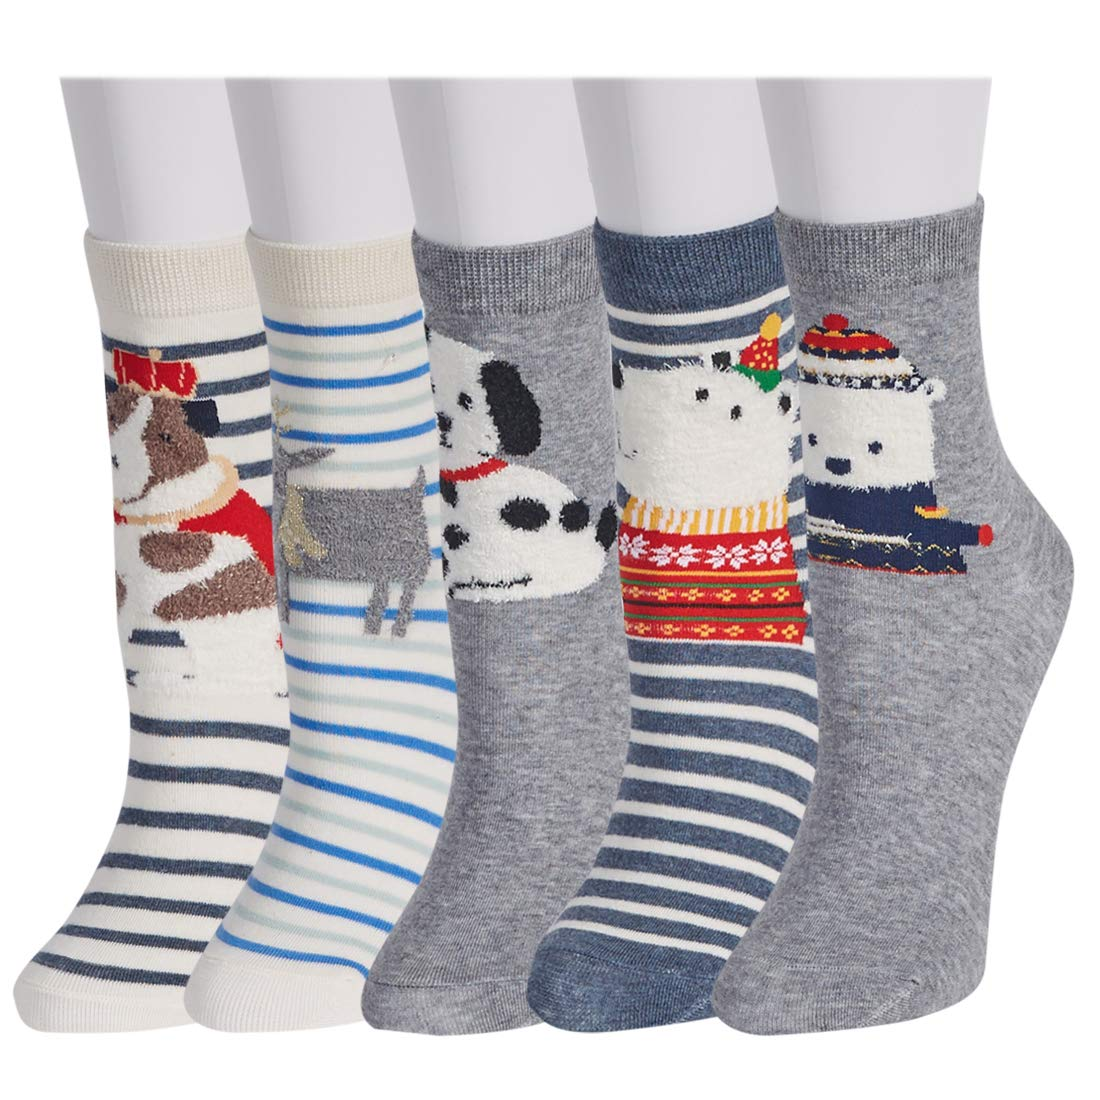 Casual Cute Cartoon Socks 5 Pairs - Novelty Cotton Funny Animal Crew Socks for Women and Girls